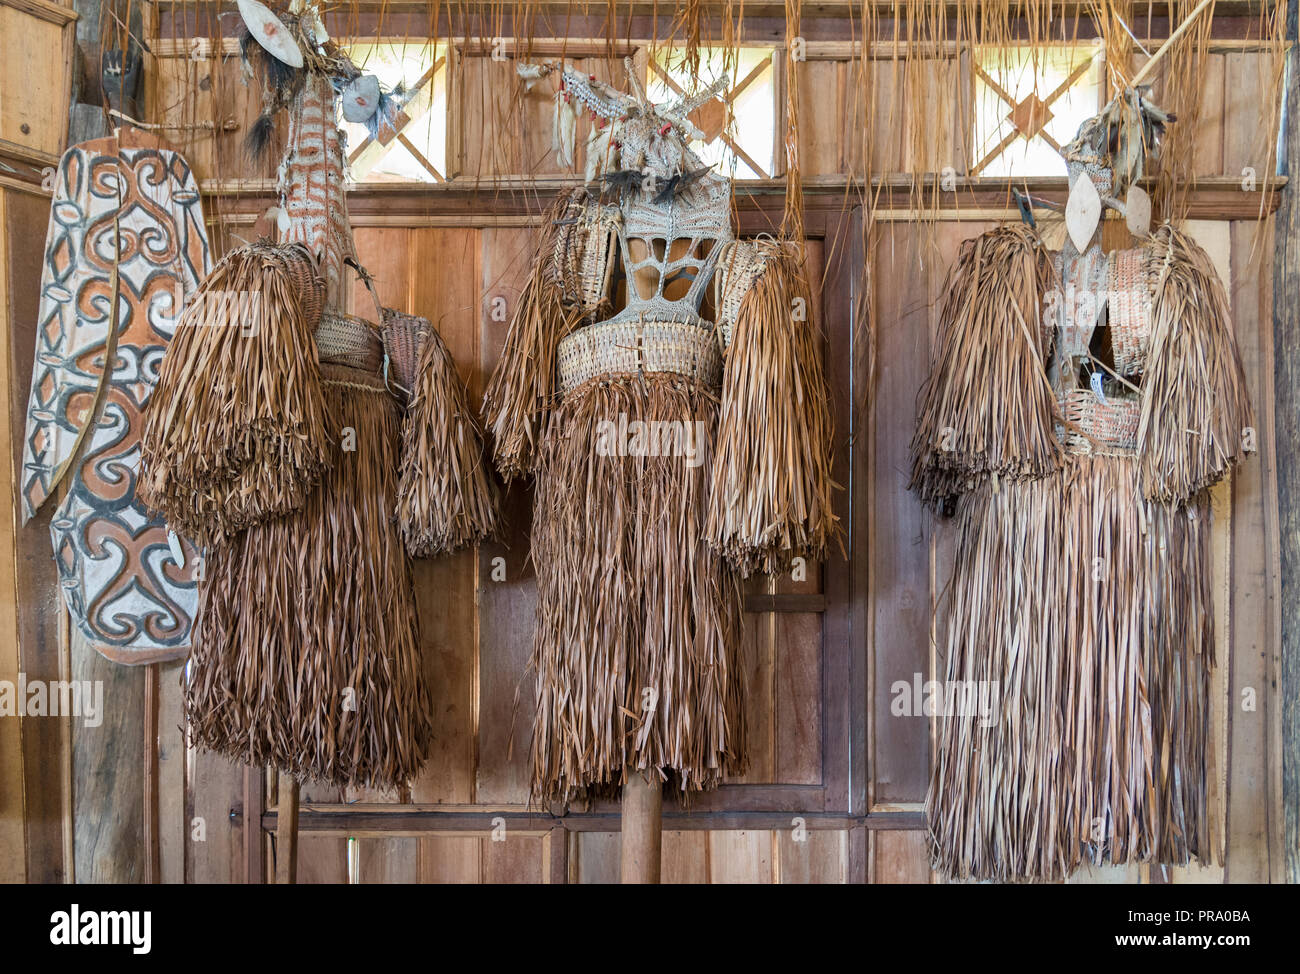 Collection of traditional grass skirts indigenous women wear hanging on a wall. Wamena, Papua, Indonesia. Stock Photo